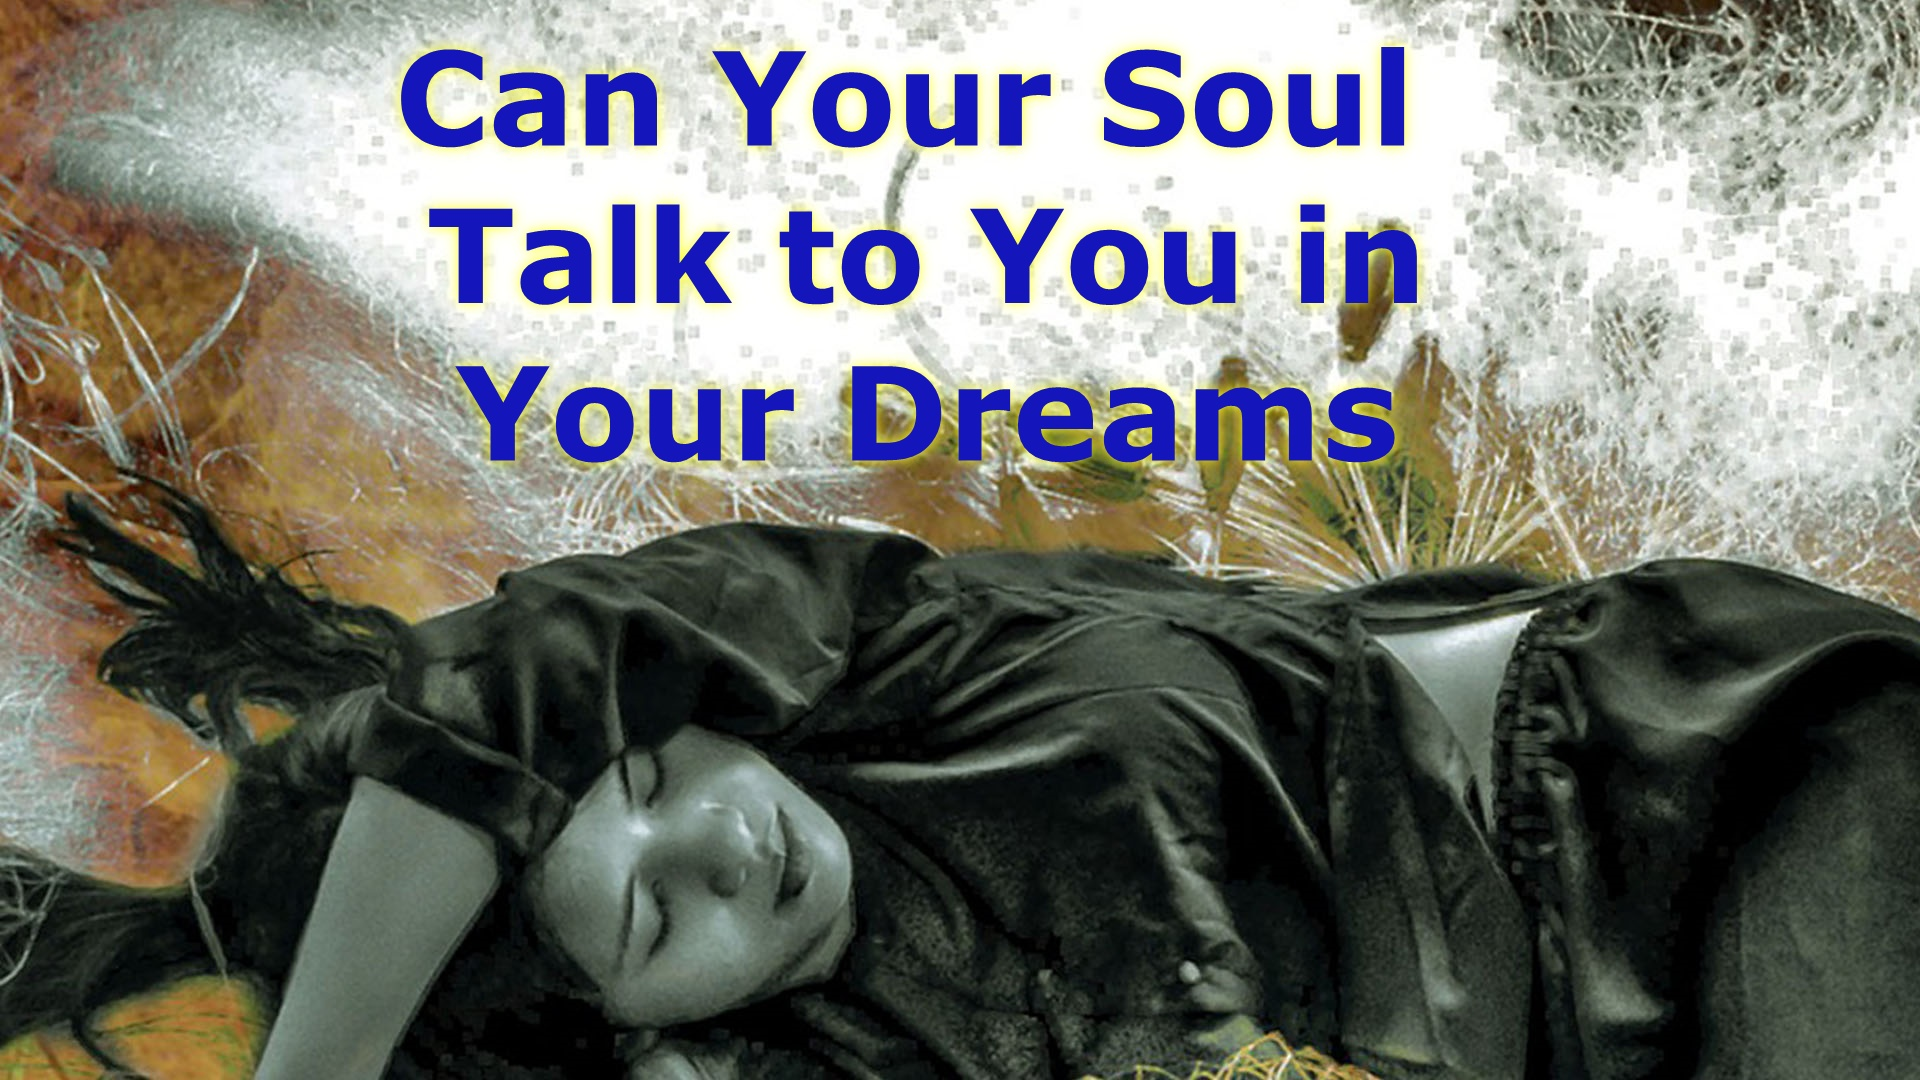 Carol Your Soul Talk to You in Your Dreams